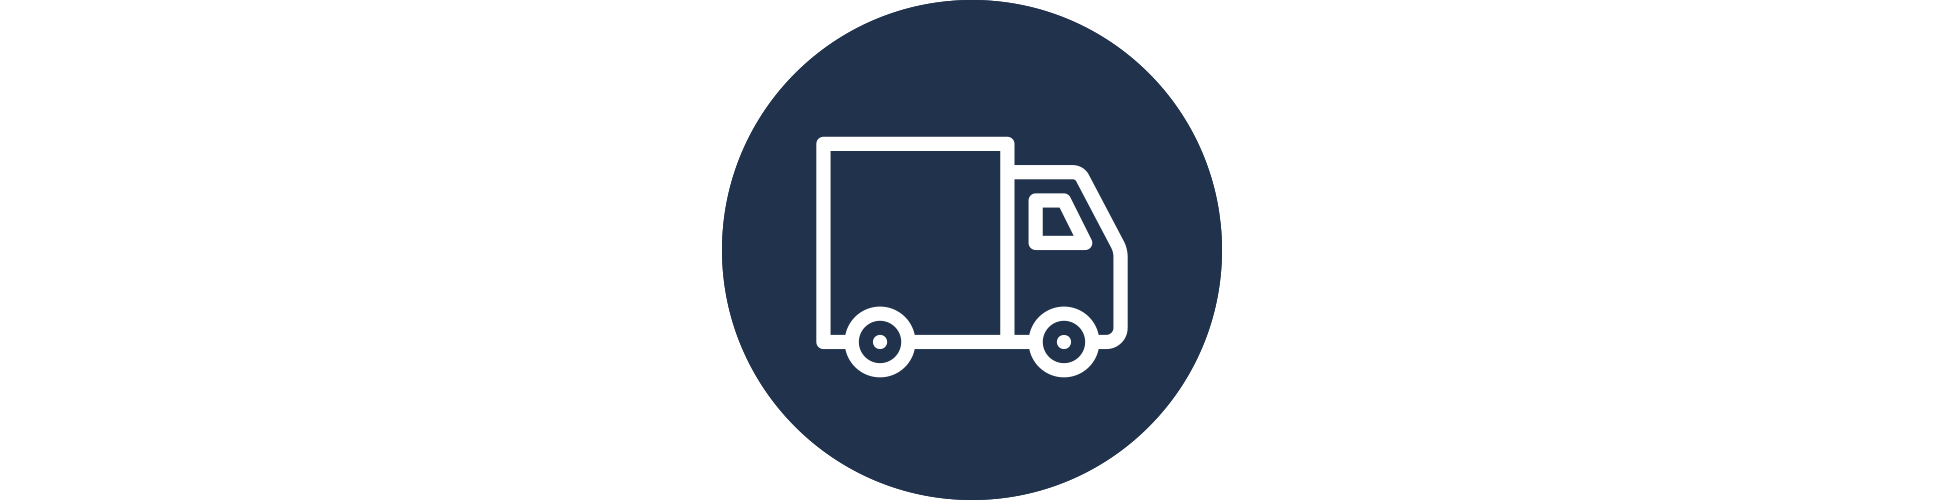 A delivery truck icon